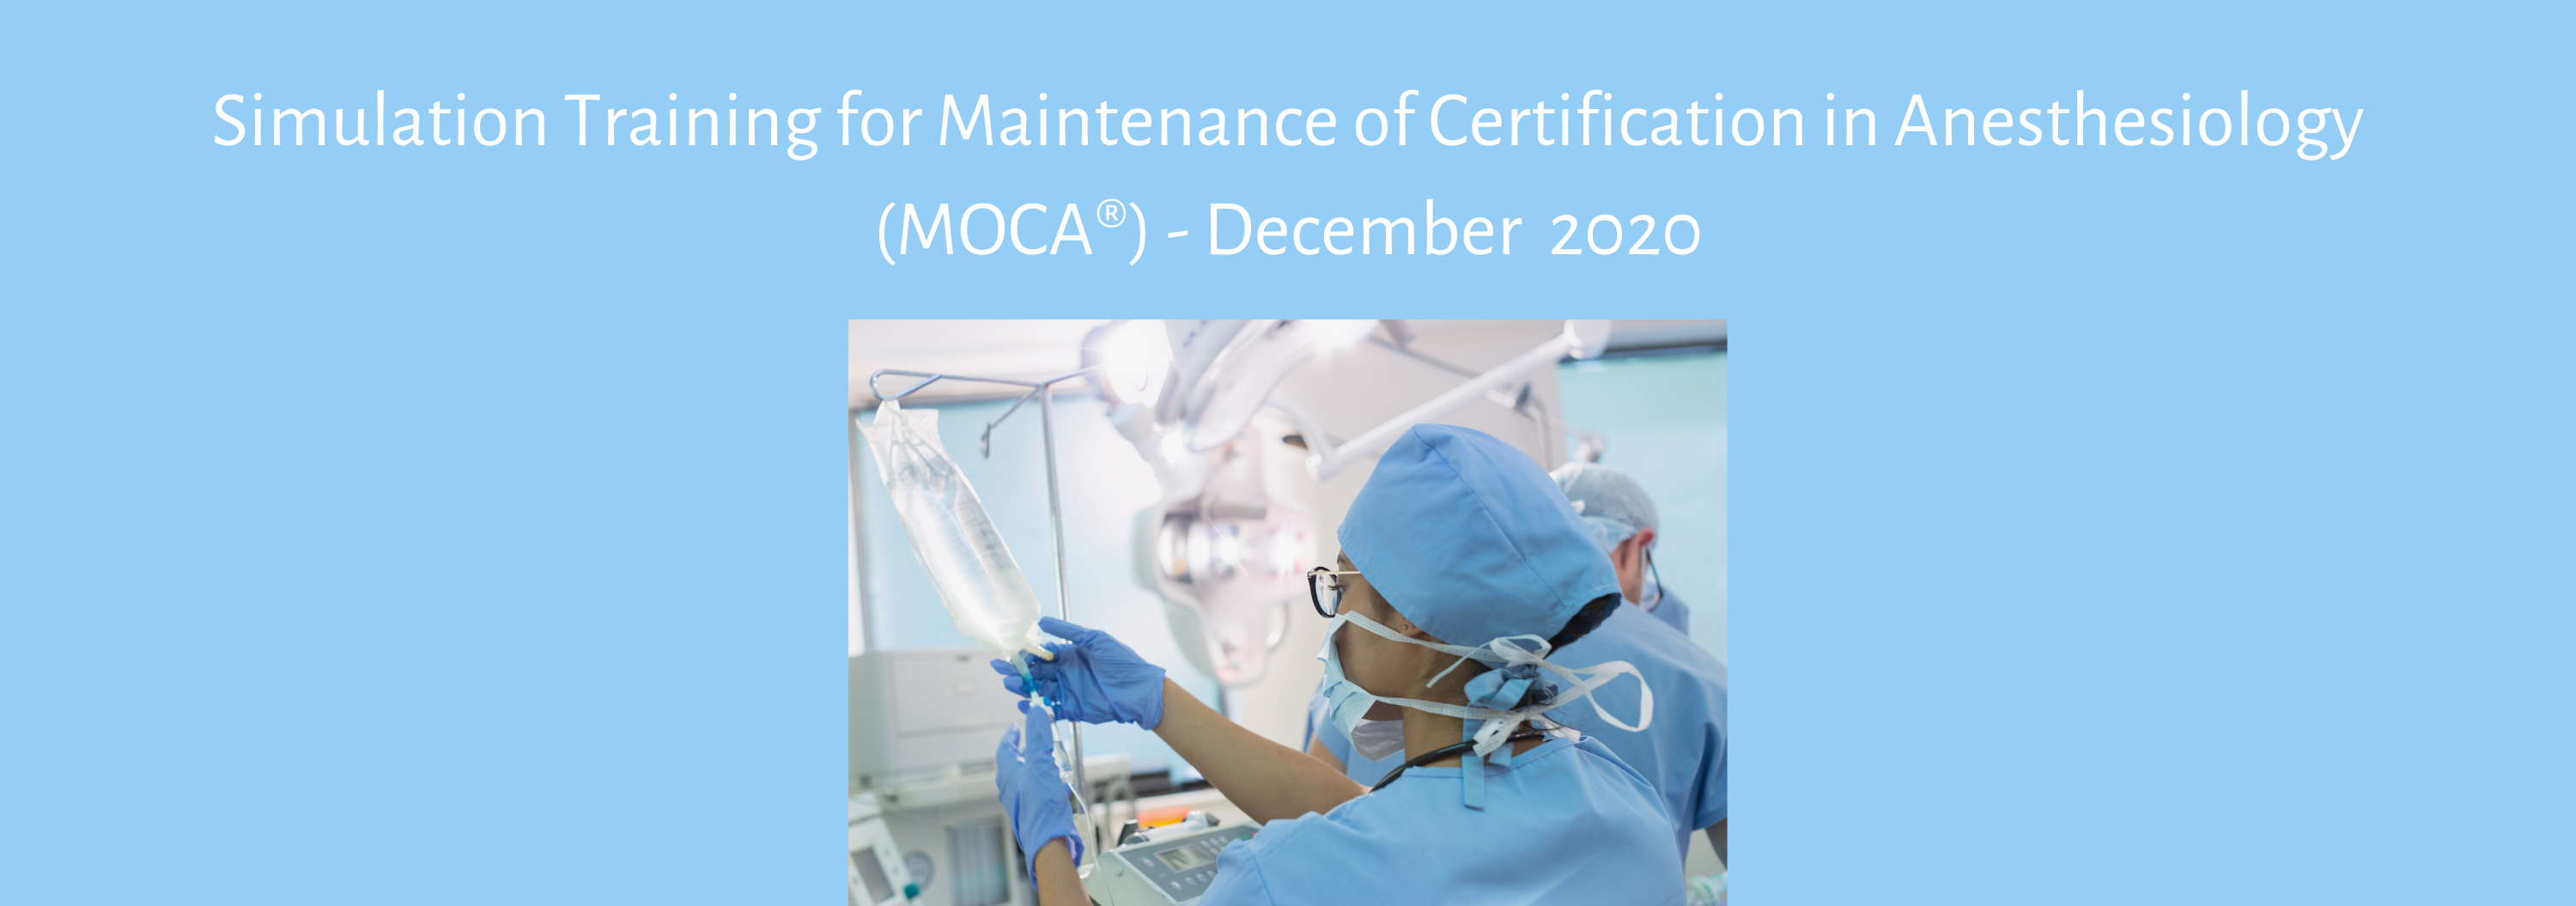 Simulation Training for Maintenance of Certification in Anesthesiology (MOCA) - Dec. 7, 2020 Banner